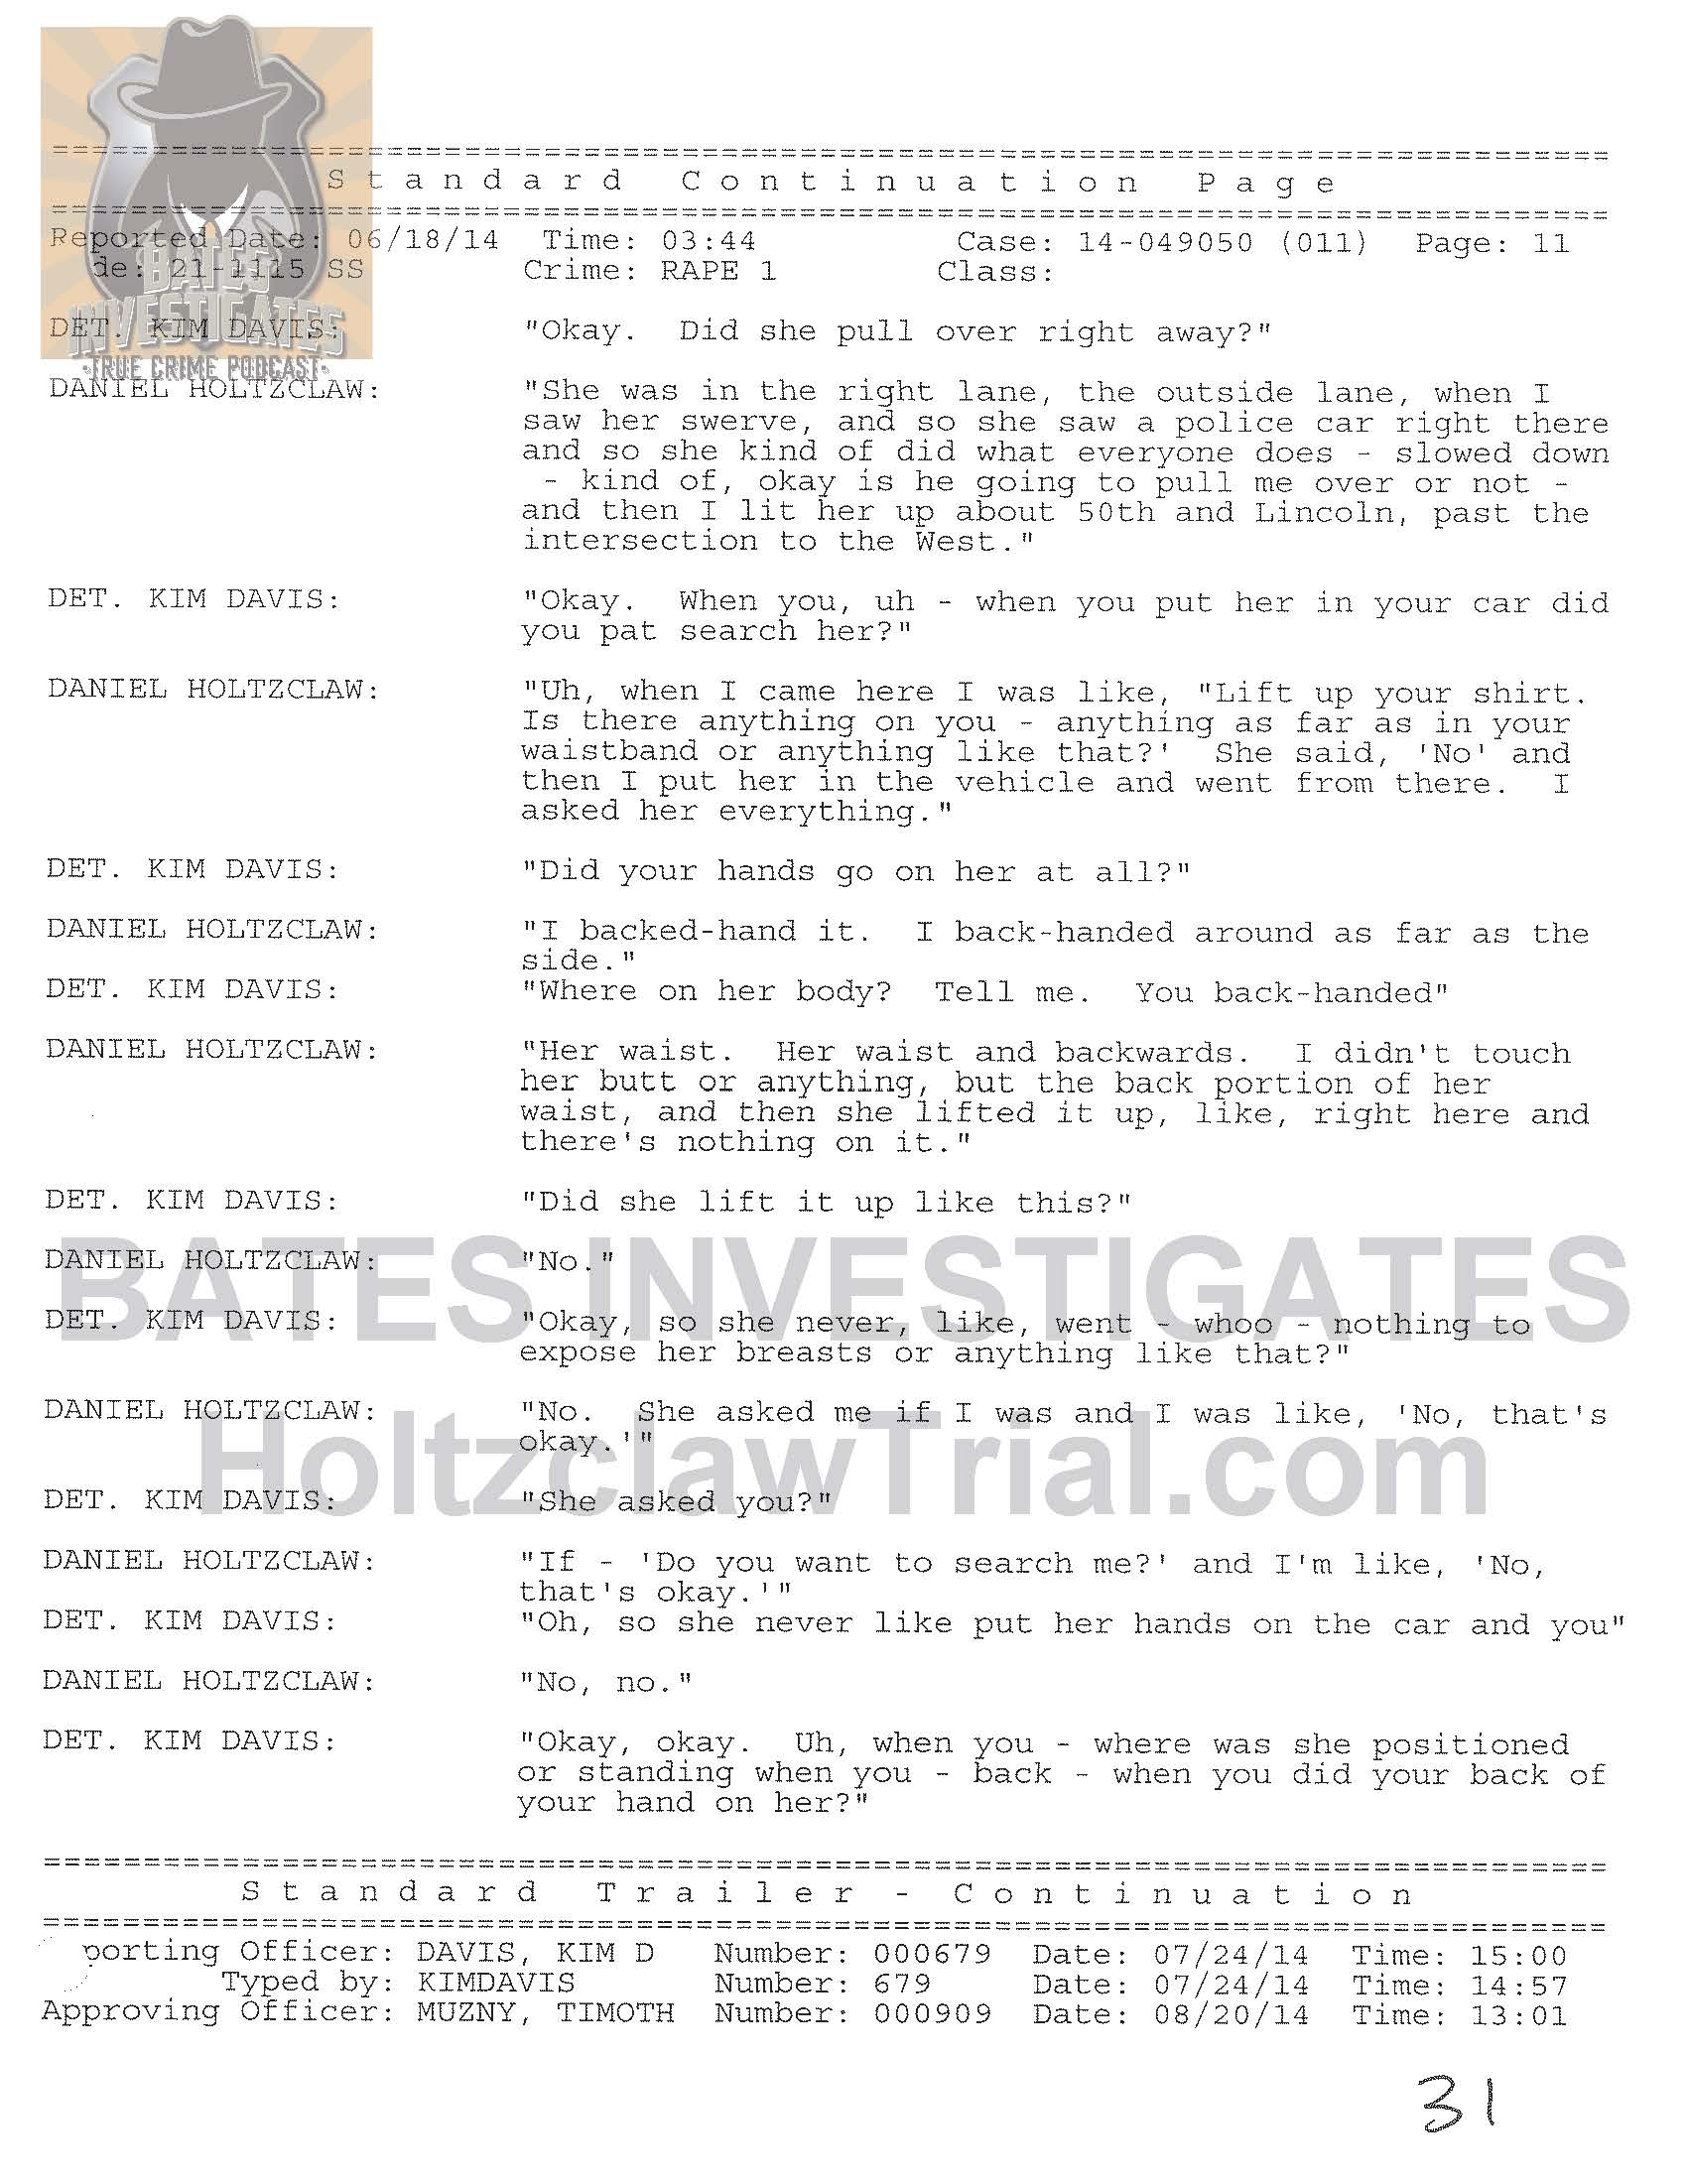 Holtzclaw Interrogation Transcript - Ep02 Redacted_Page_11.jpg